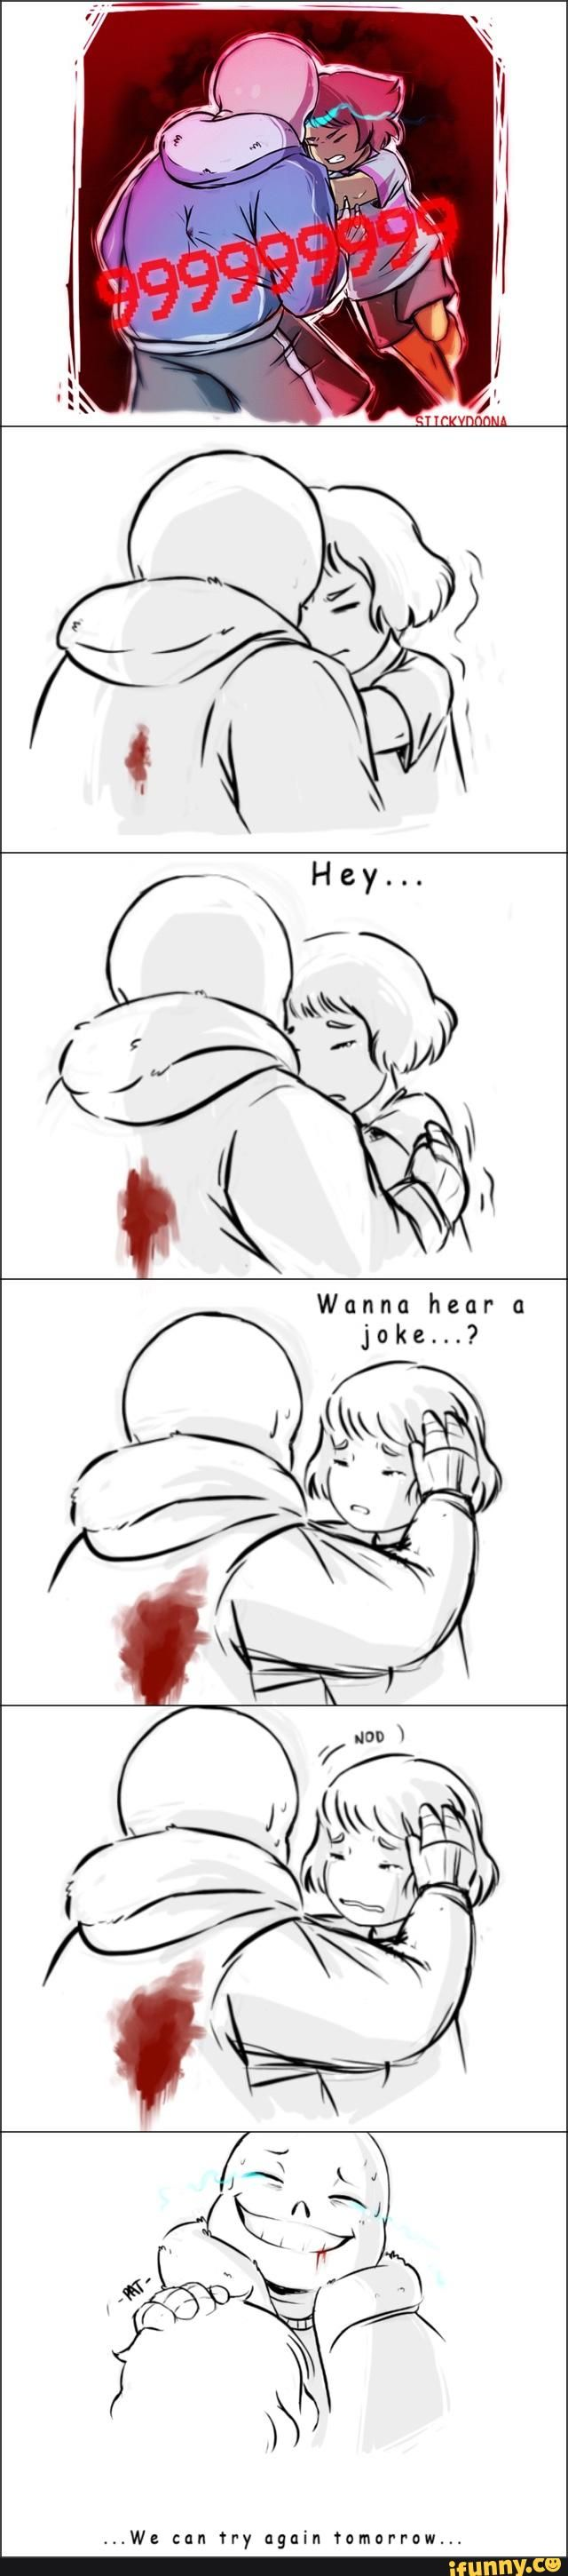 MY HEART I CAN'T EVEN aksjddhaoks #Undertale#Sans#Frisk